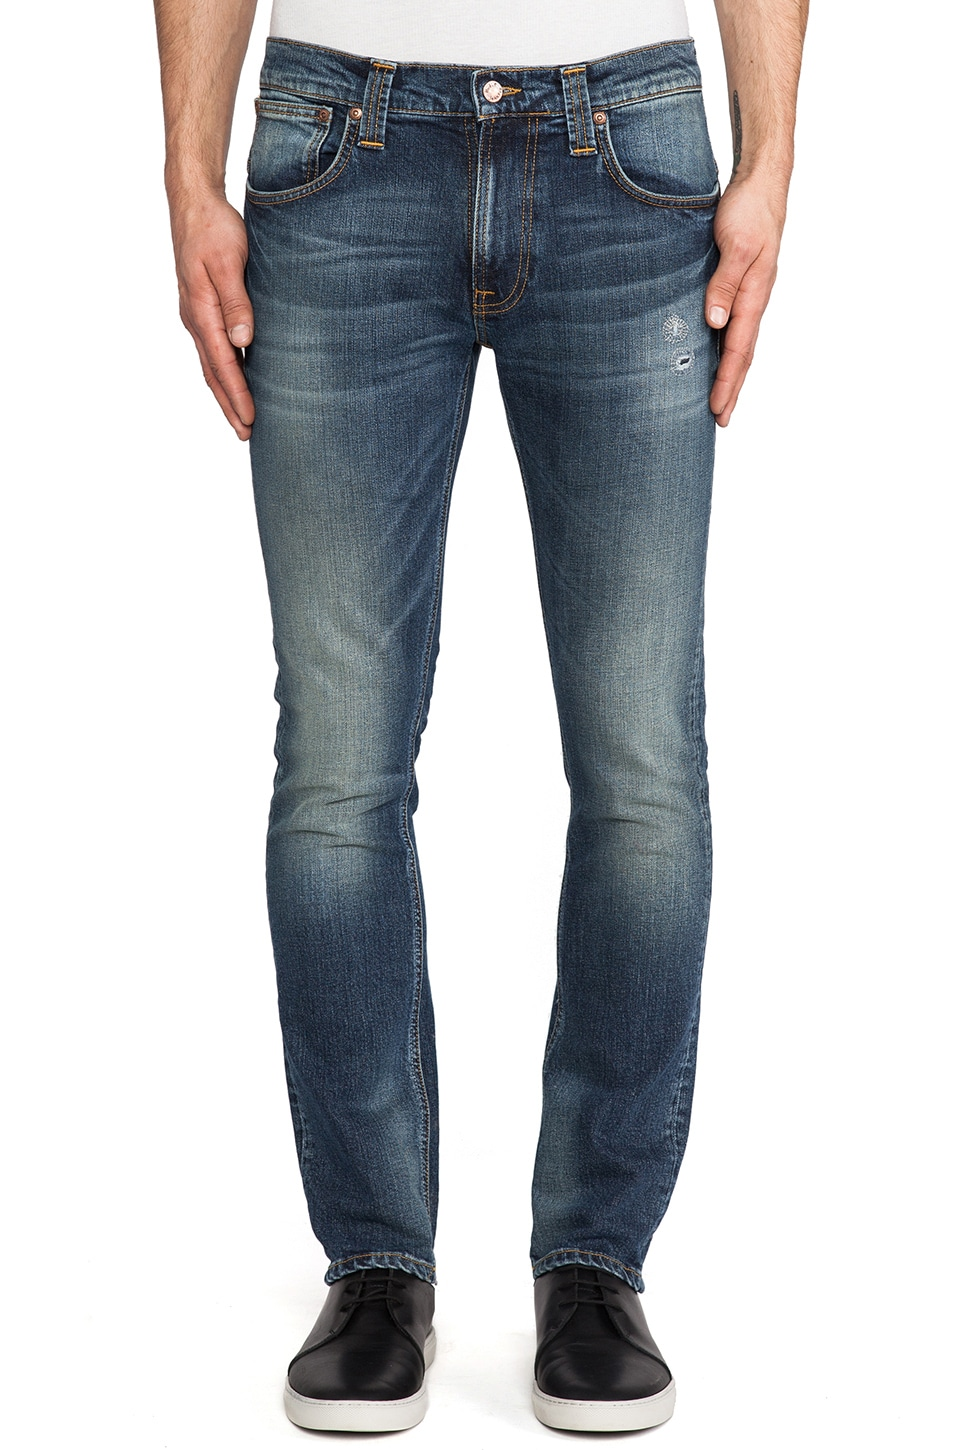 Nudie Jeans Tape Ted in Org. Clean Dark Blue